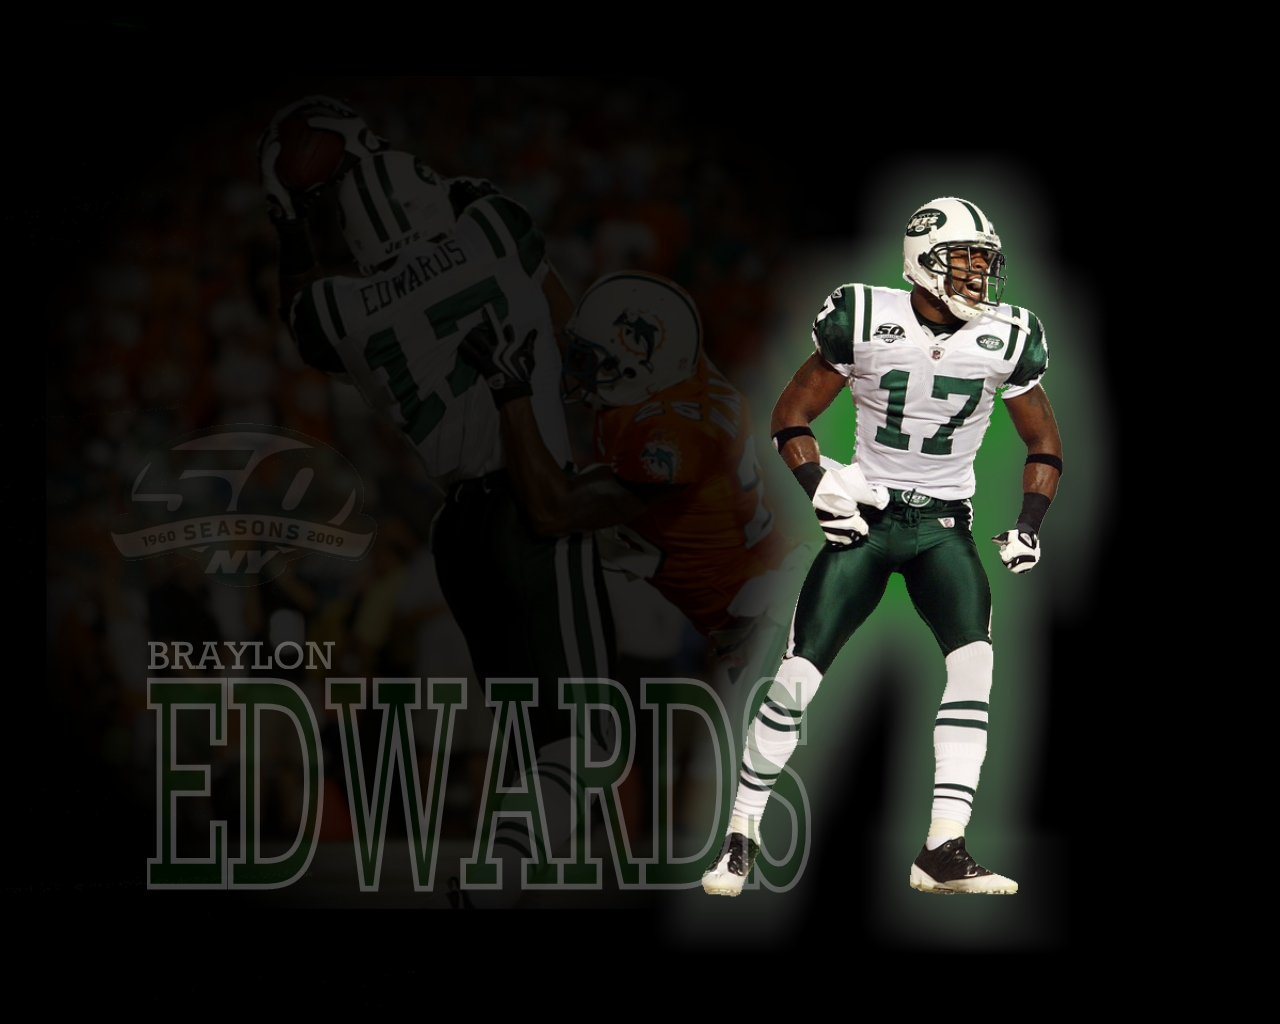 http://1.bp.blogspot.com/_SPY5-z18DBU/TTAvlsuk02I/AAAAAAAAAJg/UWn3hayFpC4/s1600/braylon_edwards_wallpaper_new_york_jets_1280x1024.jpeg